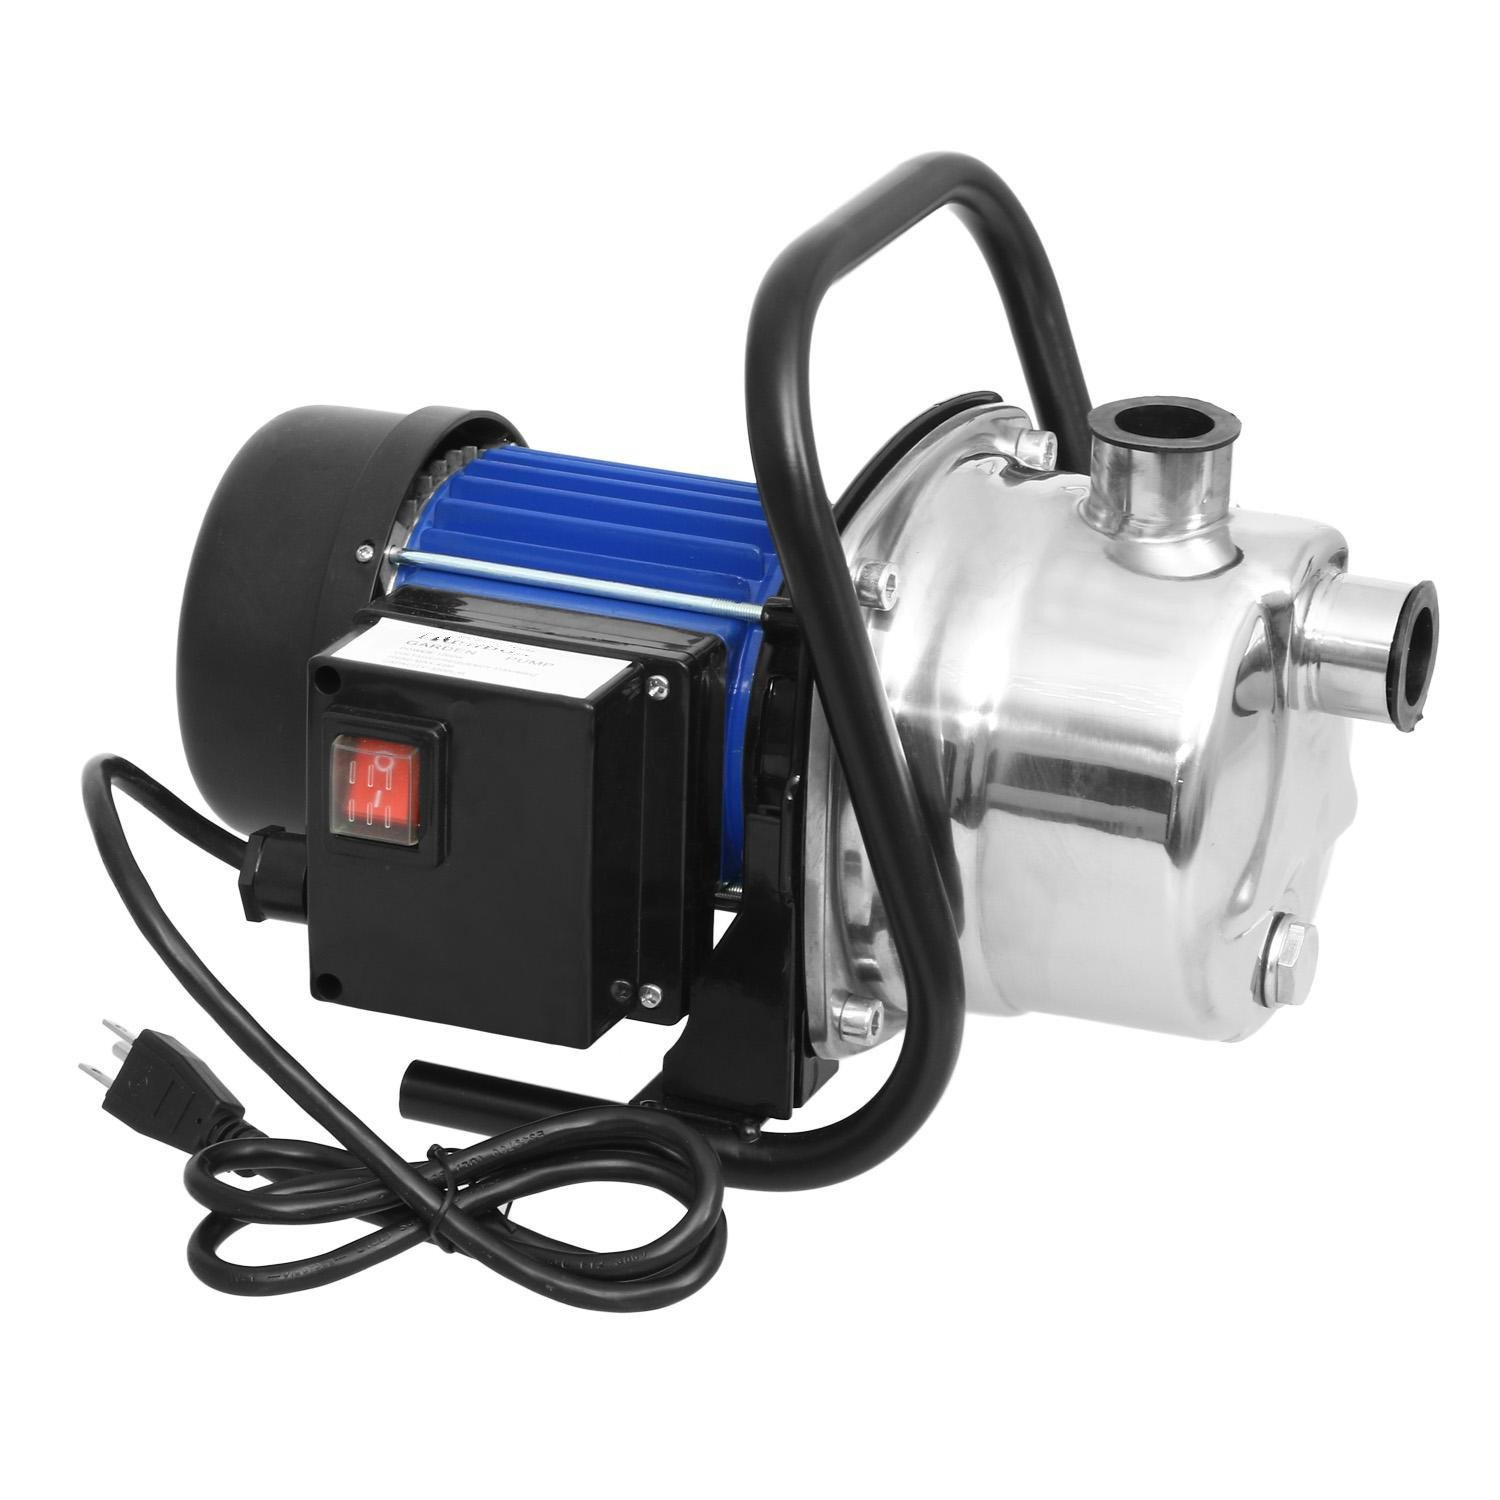 Lantusi 1.6HP Portable Stainless Steel Lawn Sprinkling Pump, High Capacity Home Garden Irrigation Water Supply Pump, Booster Pump Shallow Well Pump